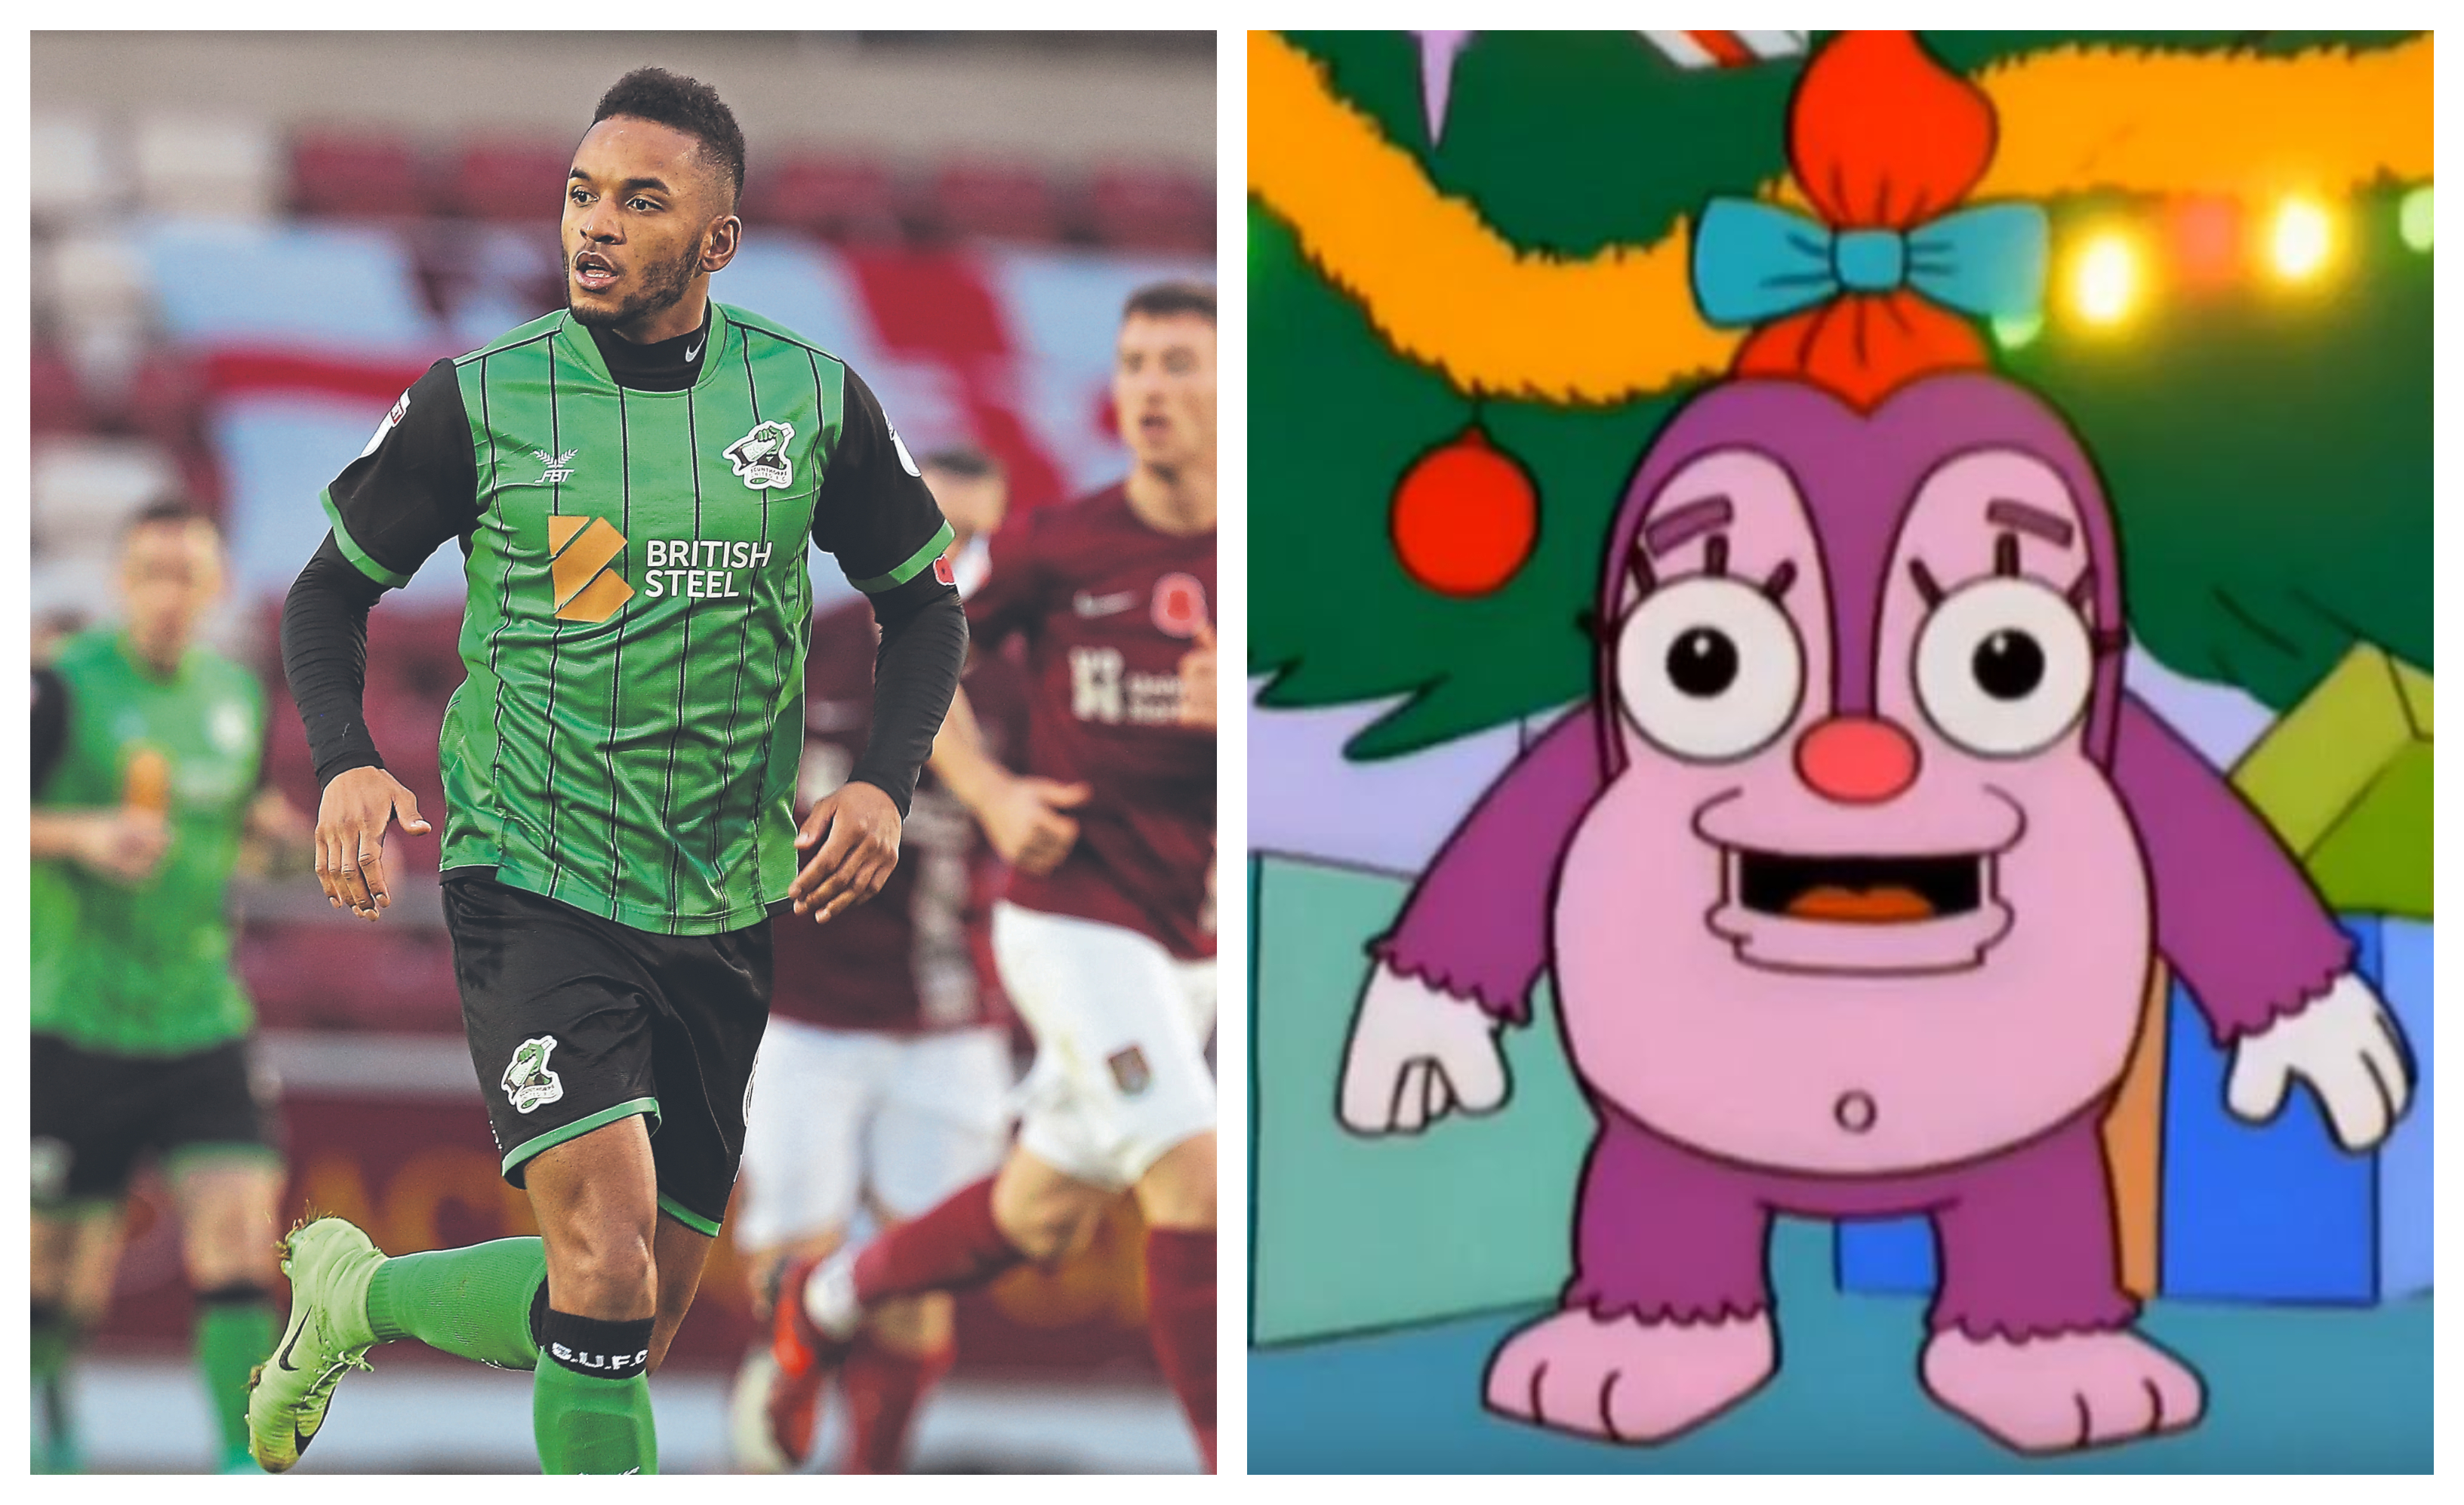 Funso Ojo in action for Scunthorpe (left) and the demonic Simpsons character Funzo.